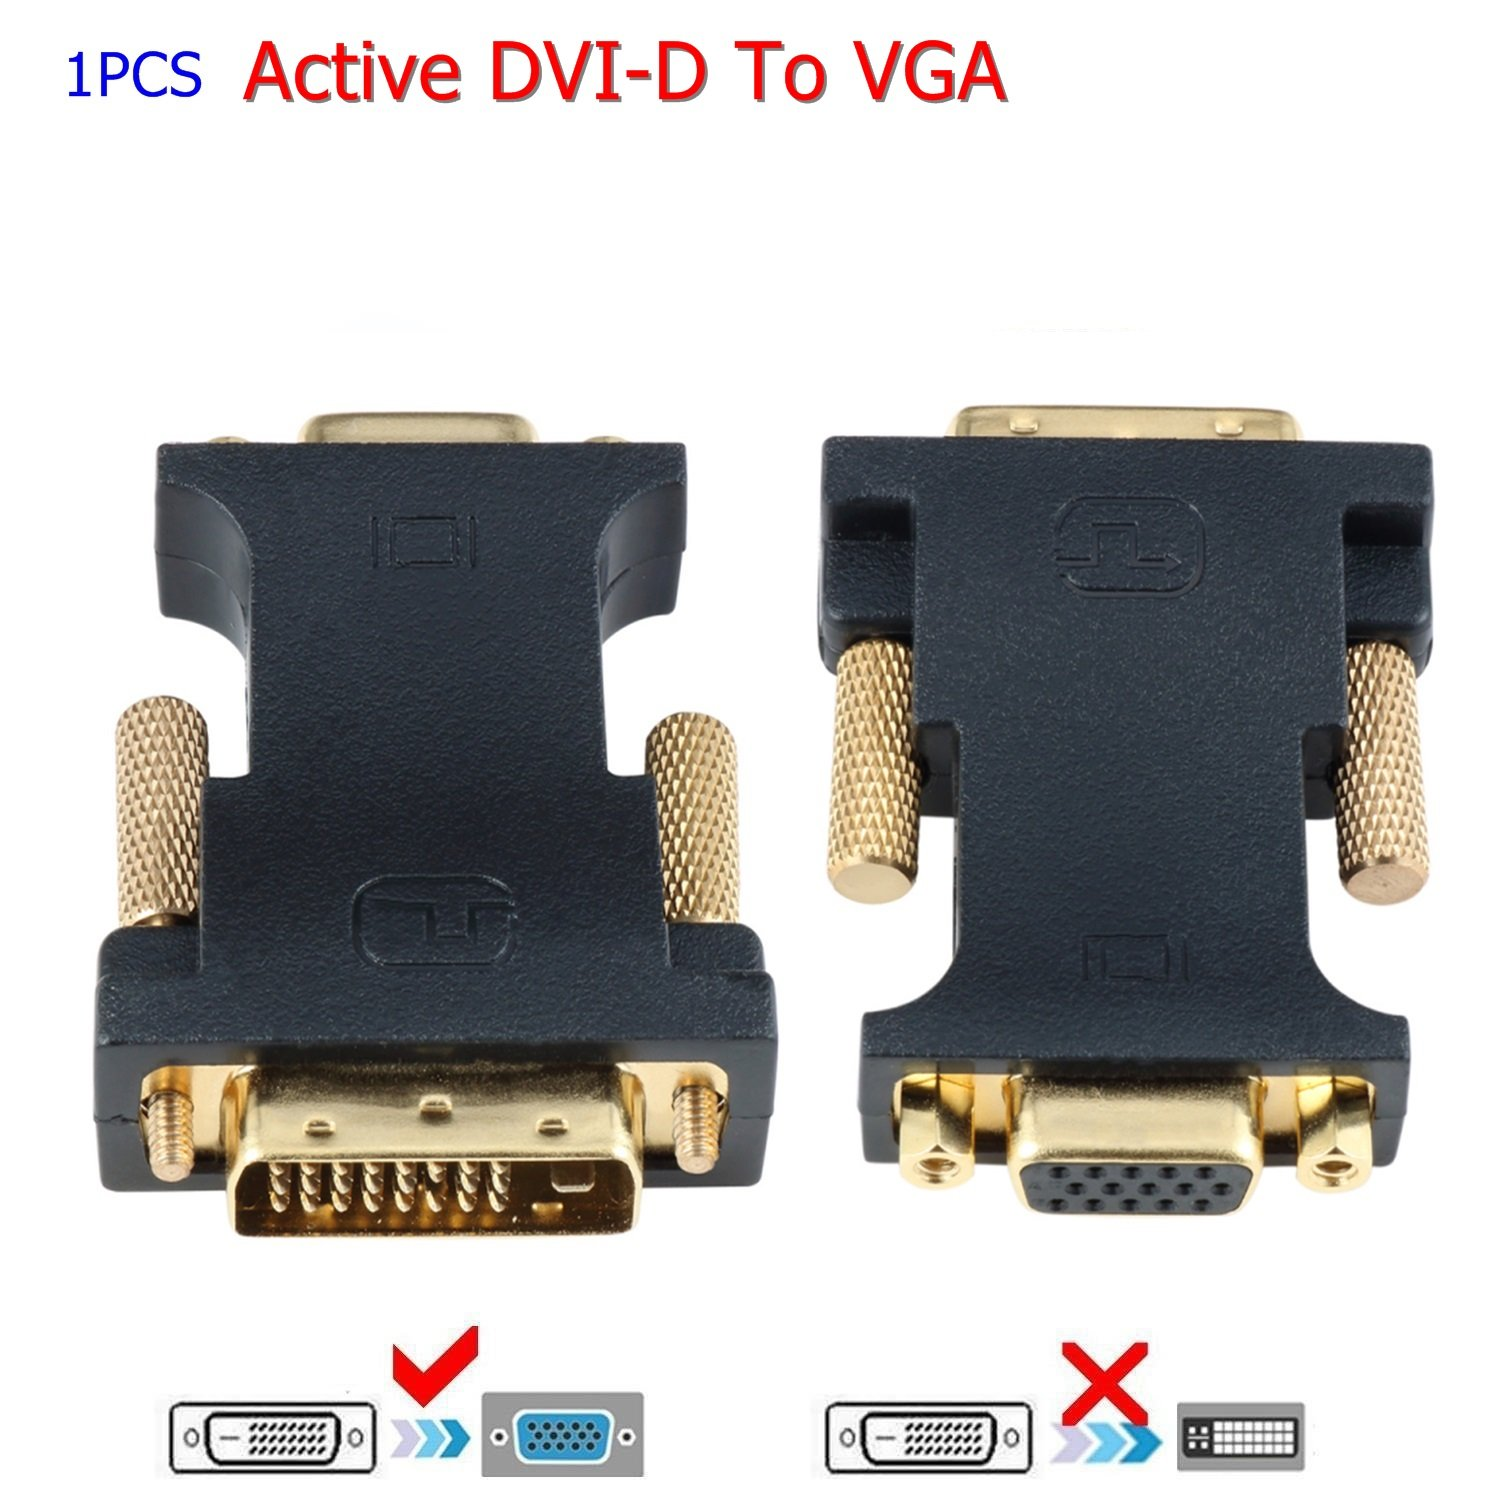 E0402 CHENLENIC Active DVI-D Dual Link 24+1 Male to VGA Female Video with Flat Cable Adapter Converter deep black